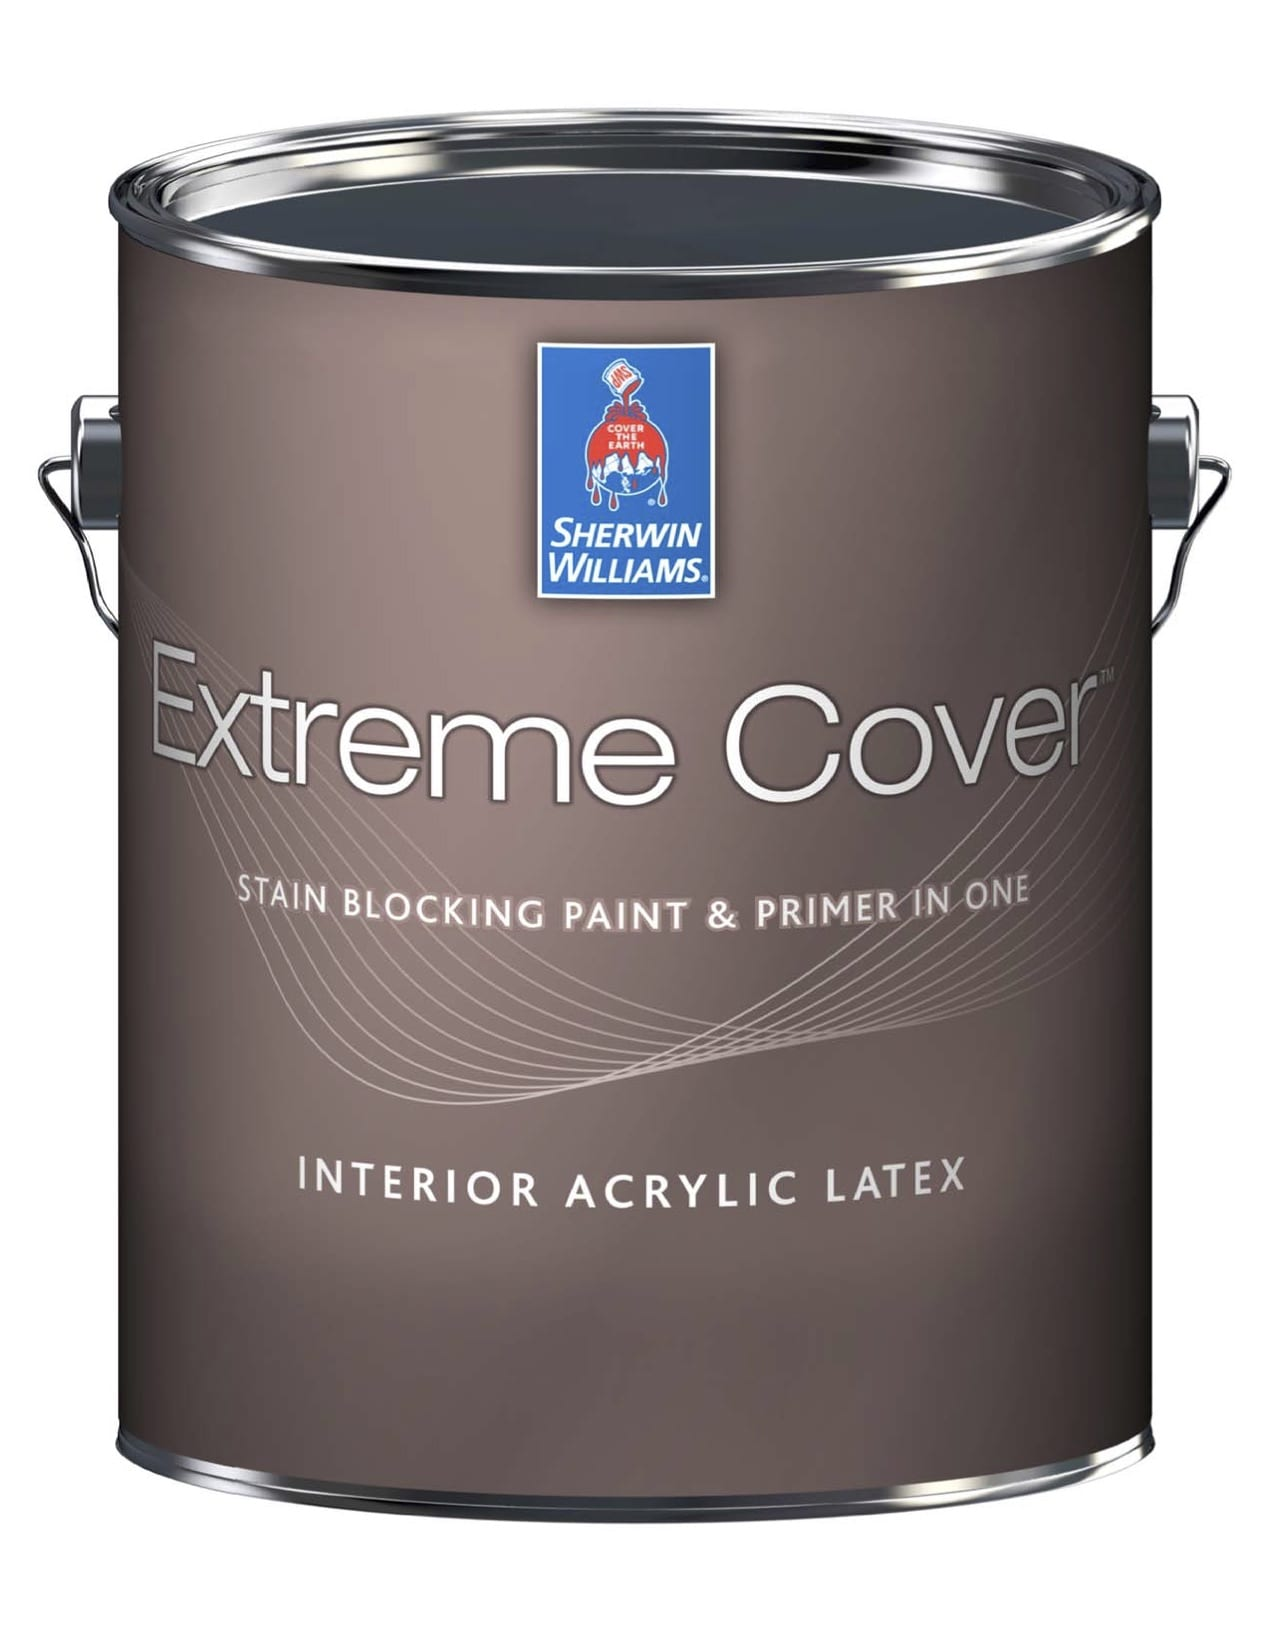 SHERWIN-WILLIAMS INTRODUCES EXTREME COVER™